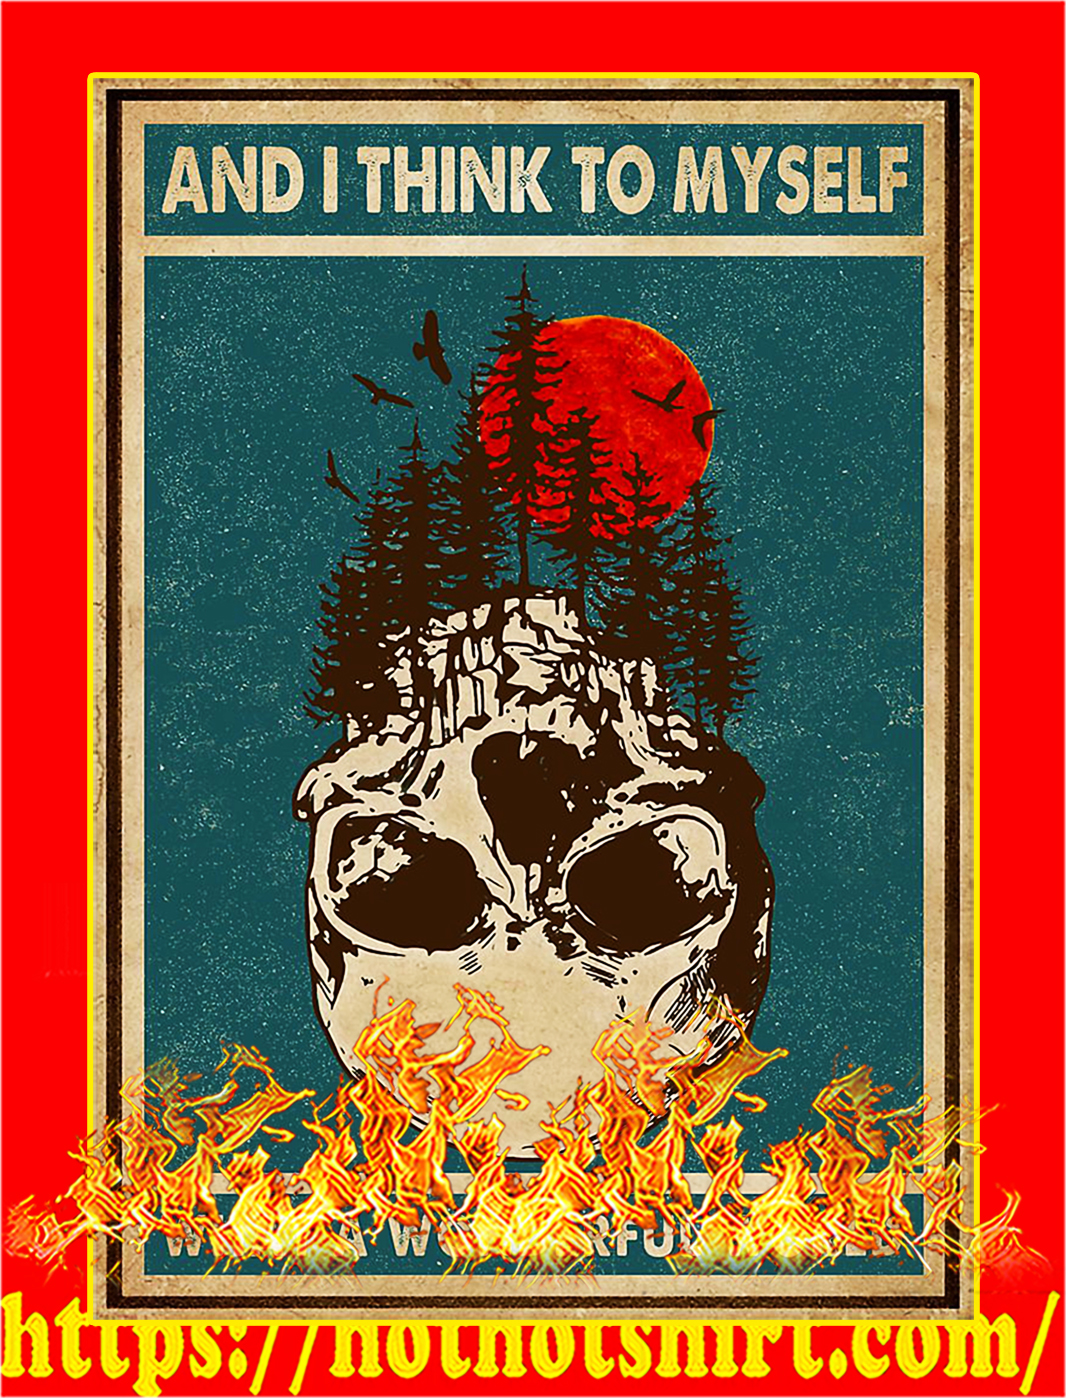 Skull and I think to myself what a wonderful world poster - A2